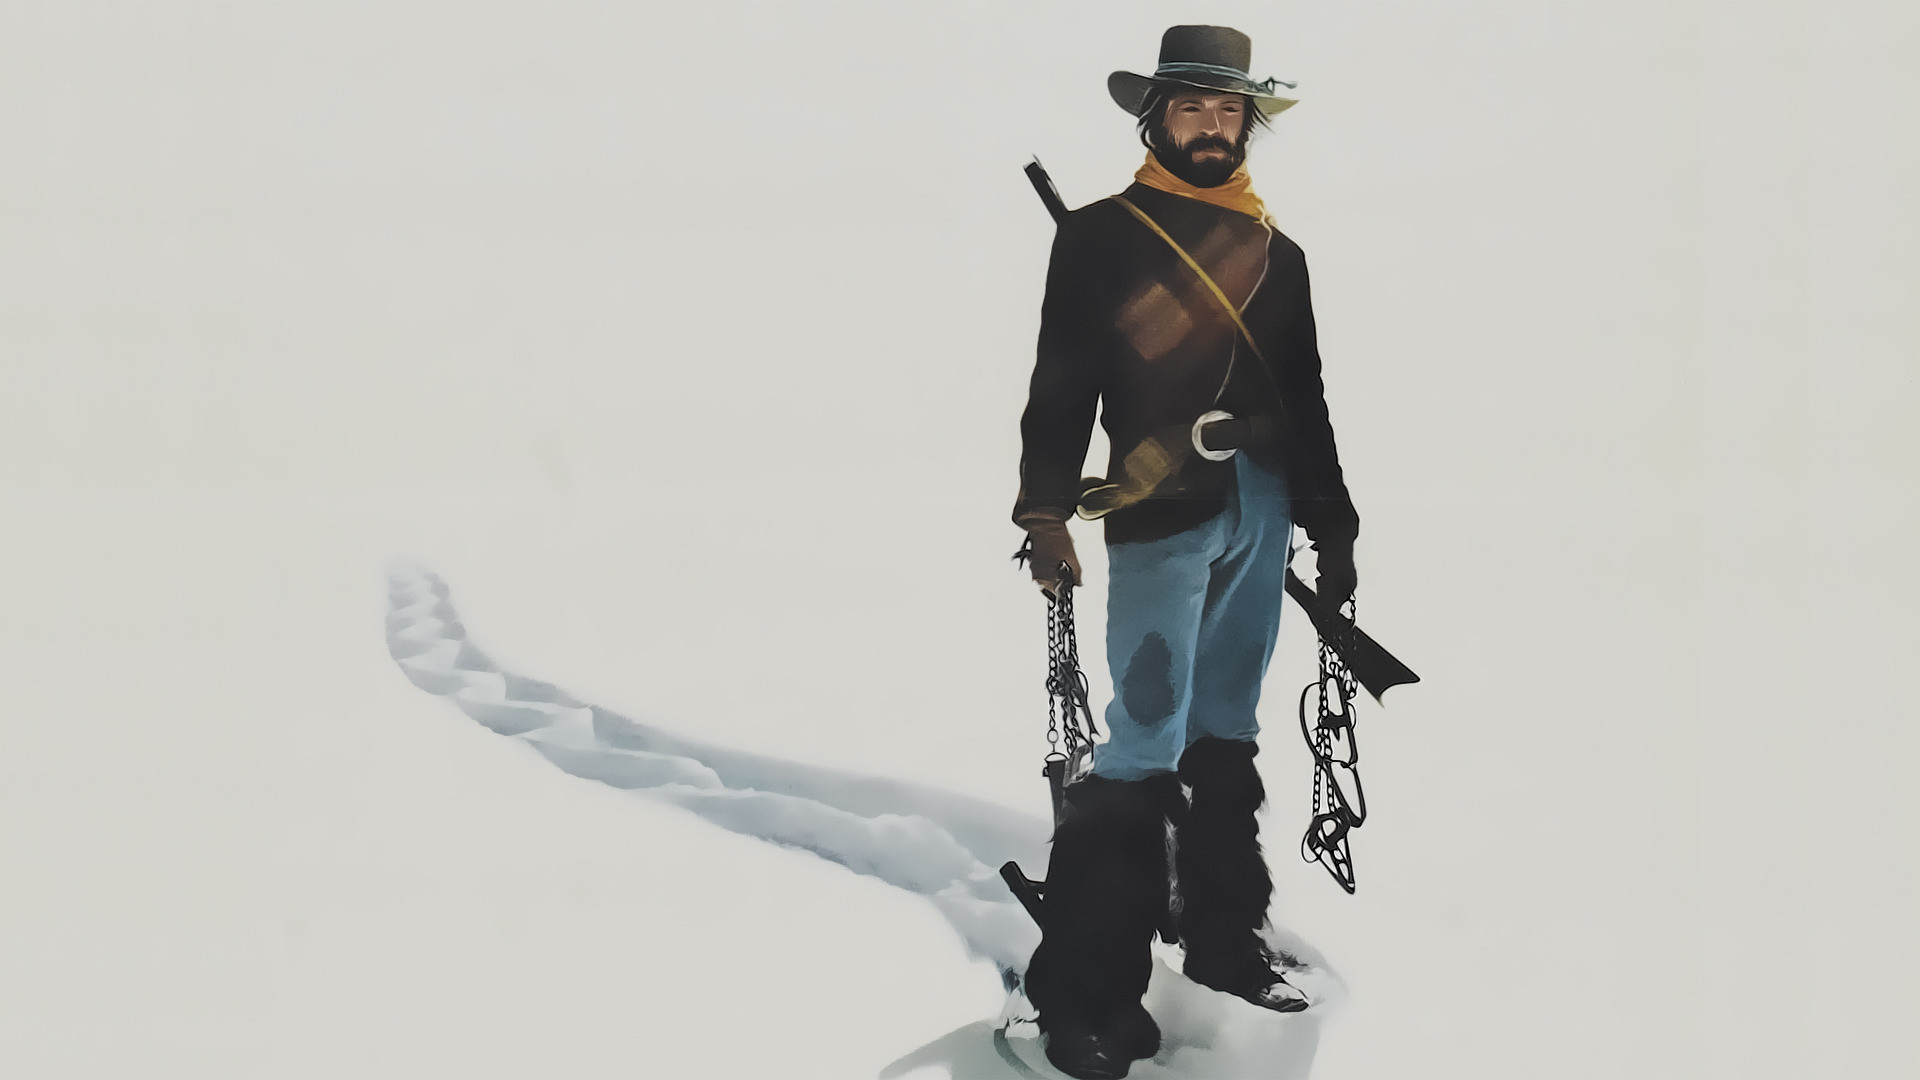 Movie Jeremiah Johnson 1920x1080